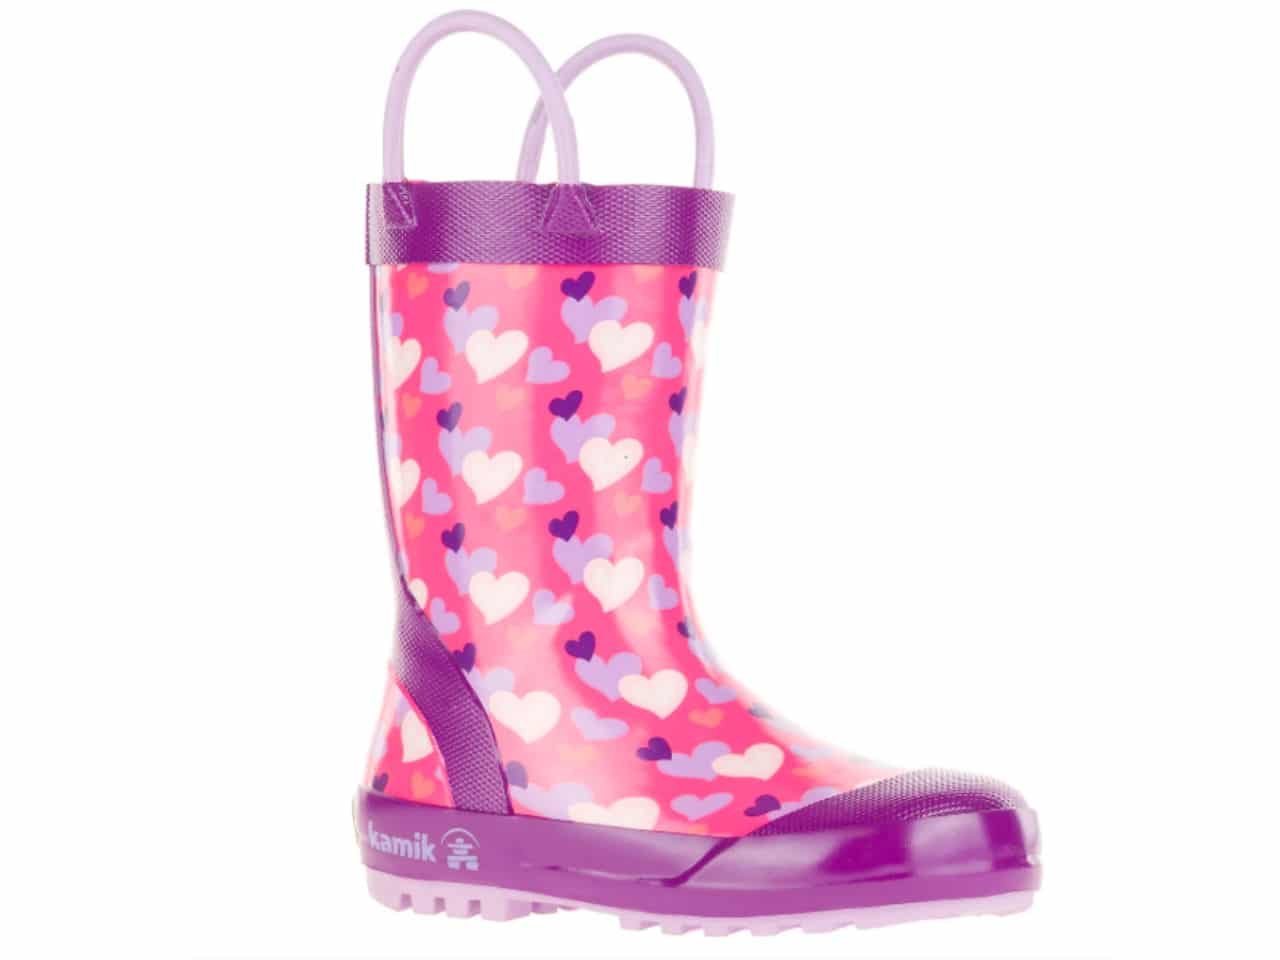 pink rainboots with hearts